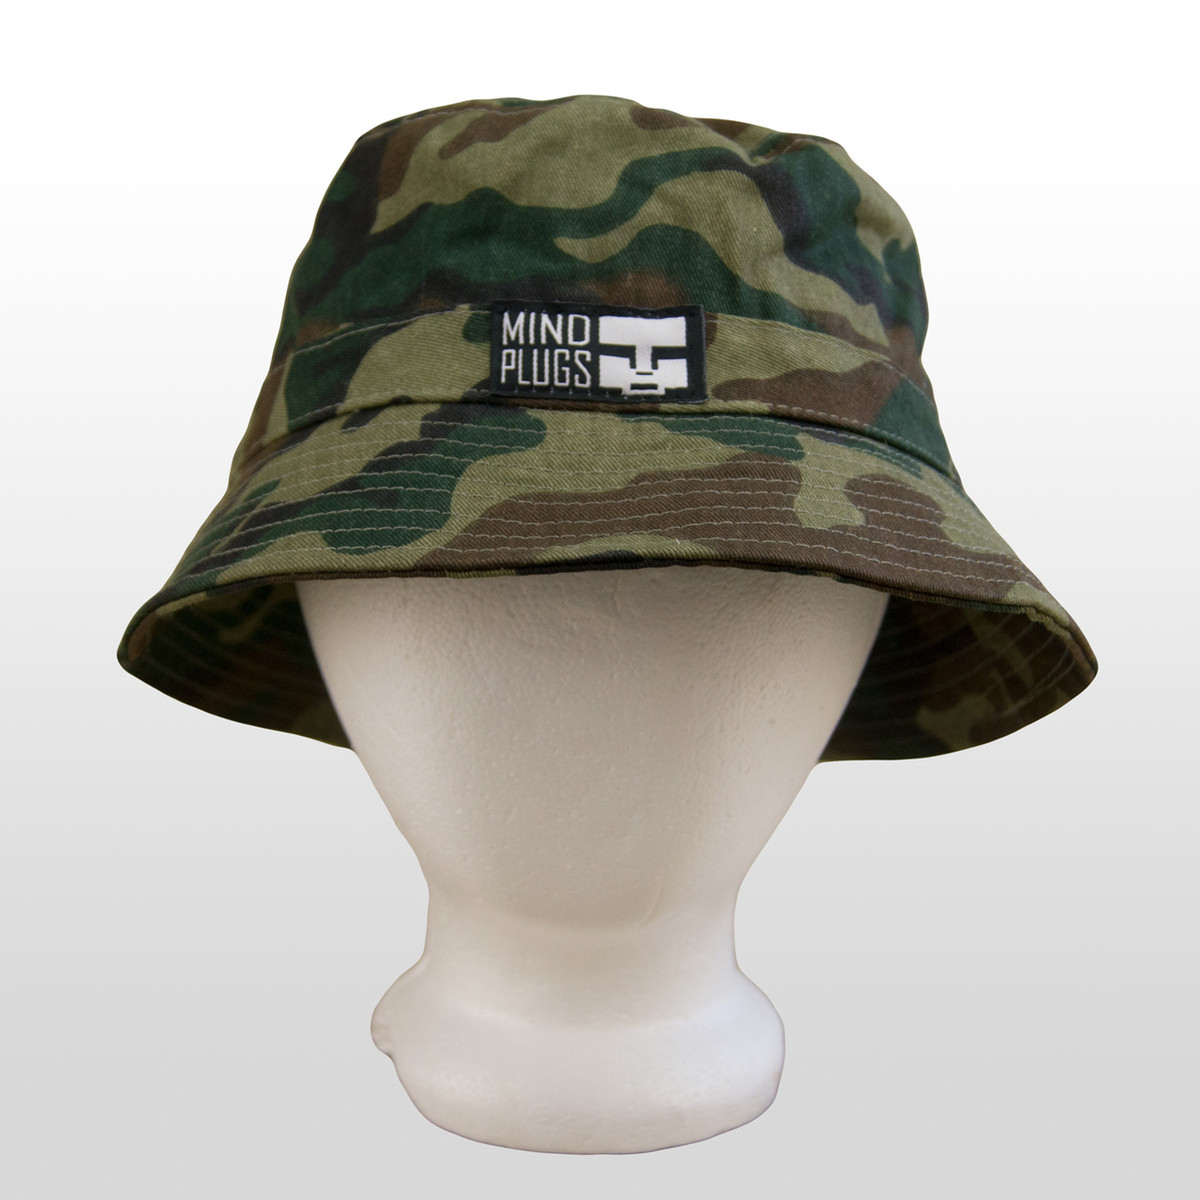 dbae5f87e078b Add this functional yet fashionable Camouflage Mind Plugs bucket hat to  your outfit to add instant